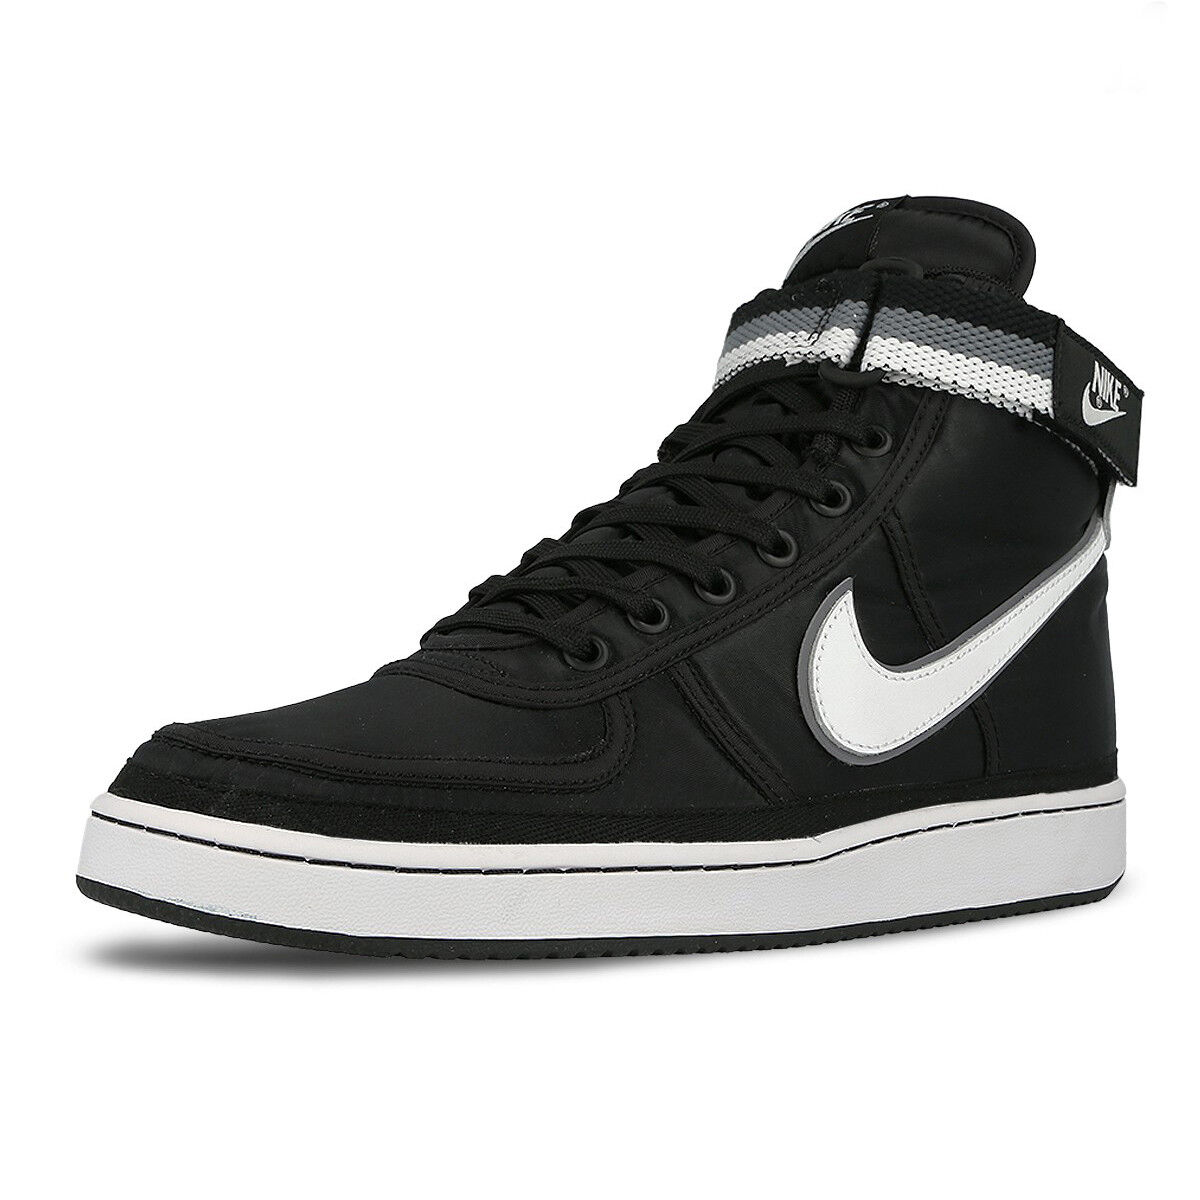 Nike Vandal High Supreme Black White Cool Grey Classic Shoes Sneakers  318330-001